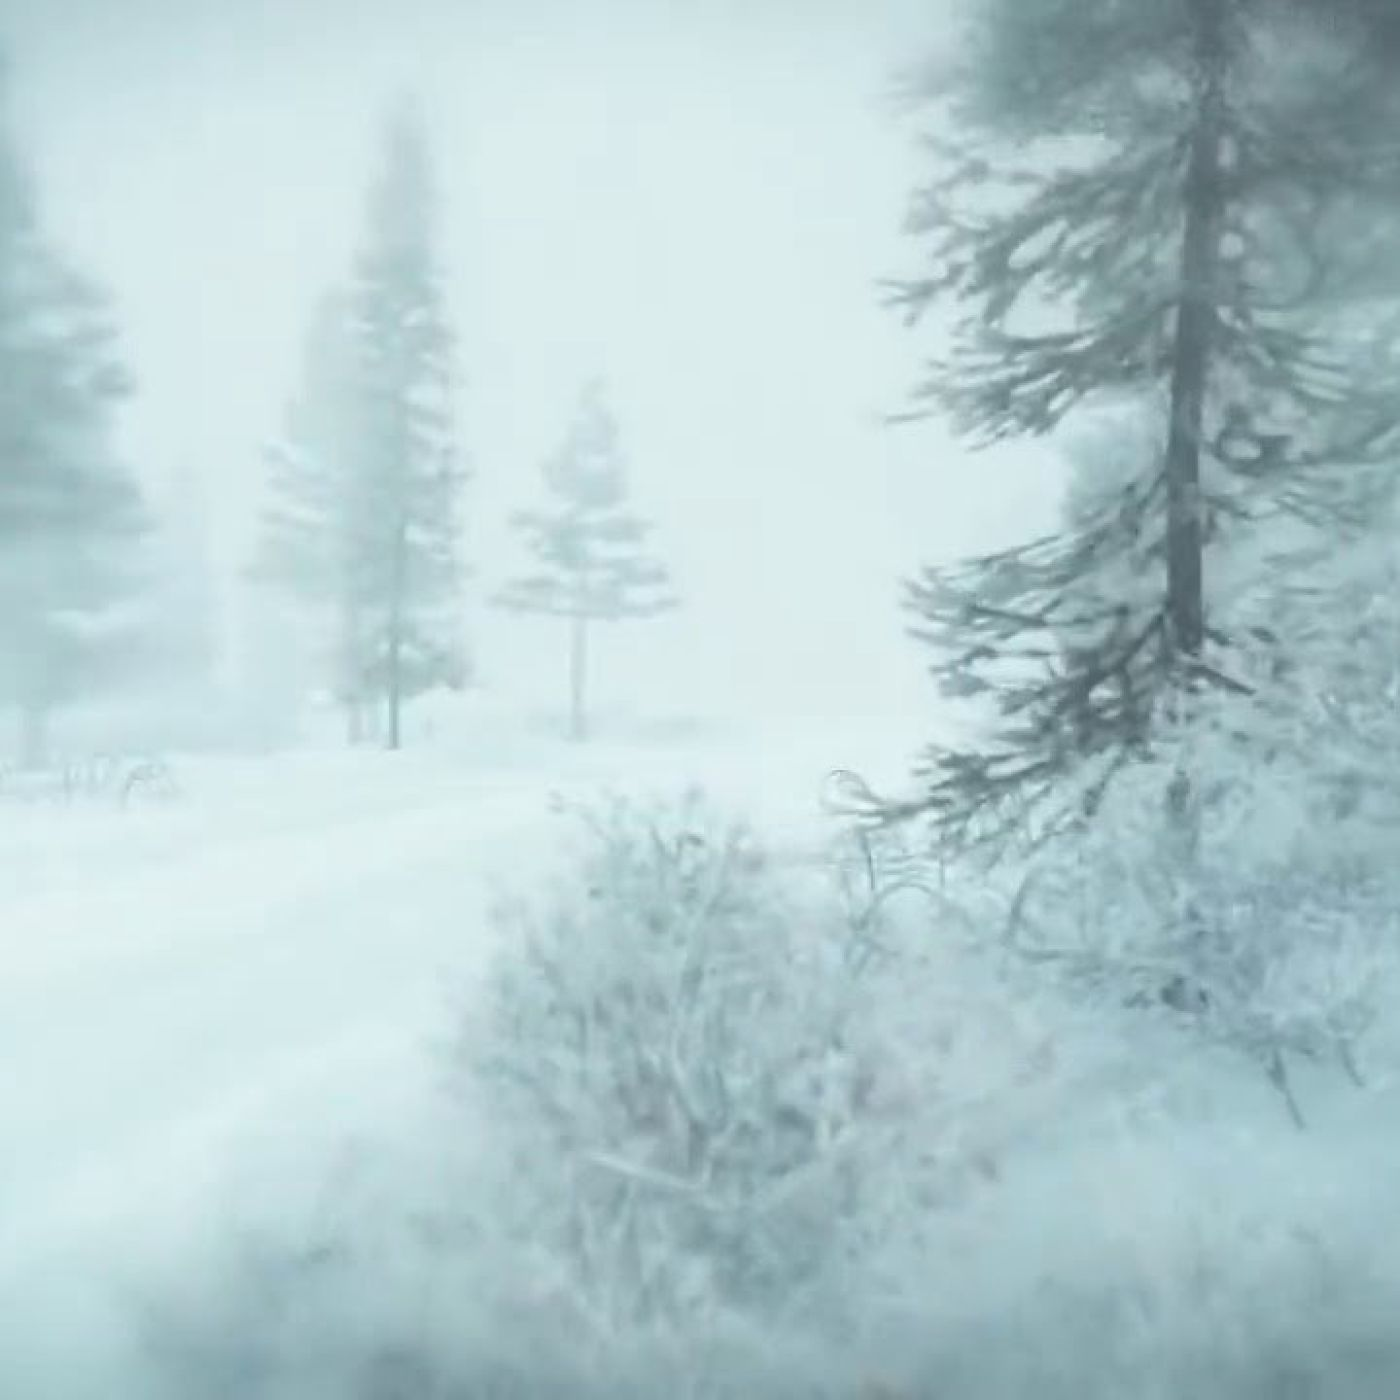 Winter Storm Ambience - Heavy Snowstorm  Blizzard Howling Wind Sounds